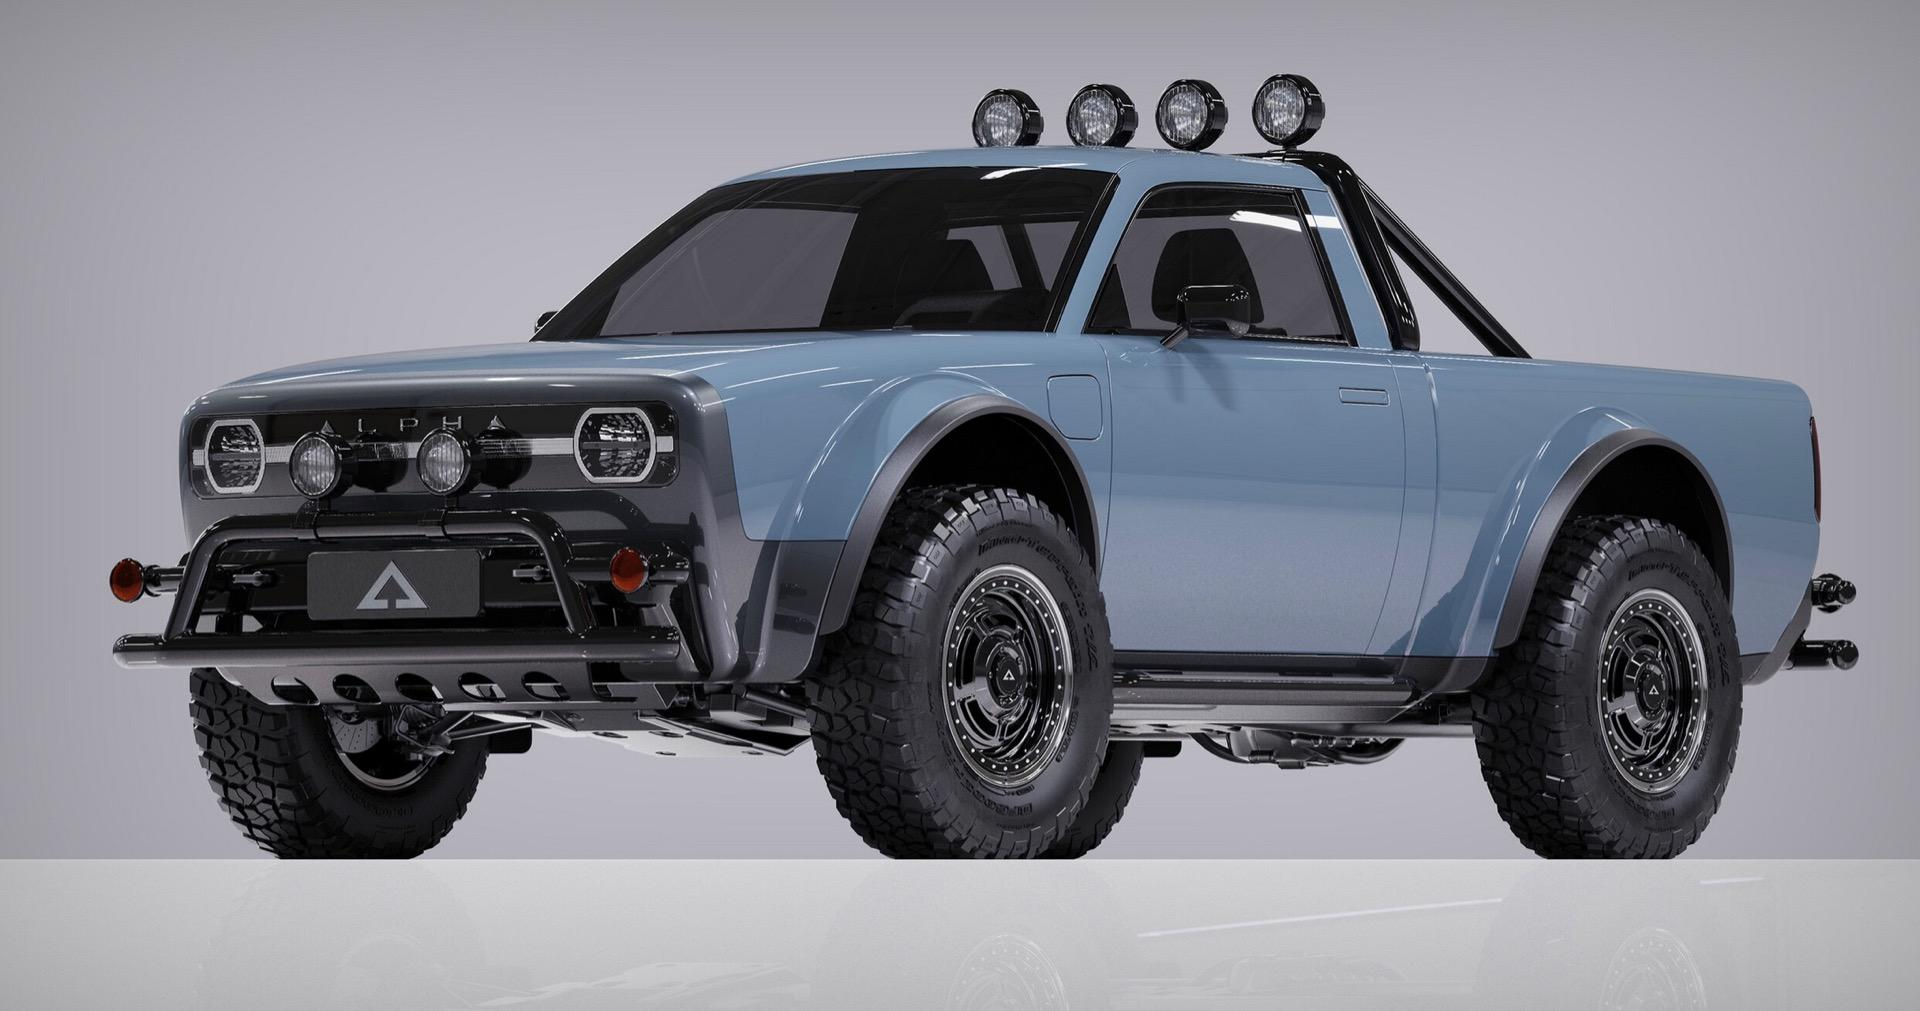 The Alpha Wolf EV pickup is the electric truck we want - Online EV